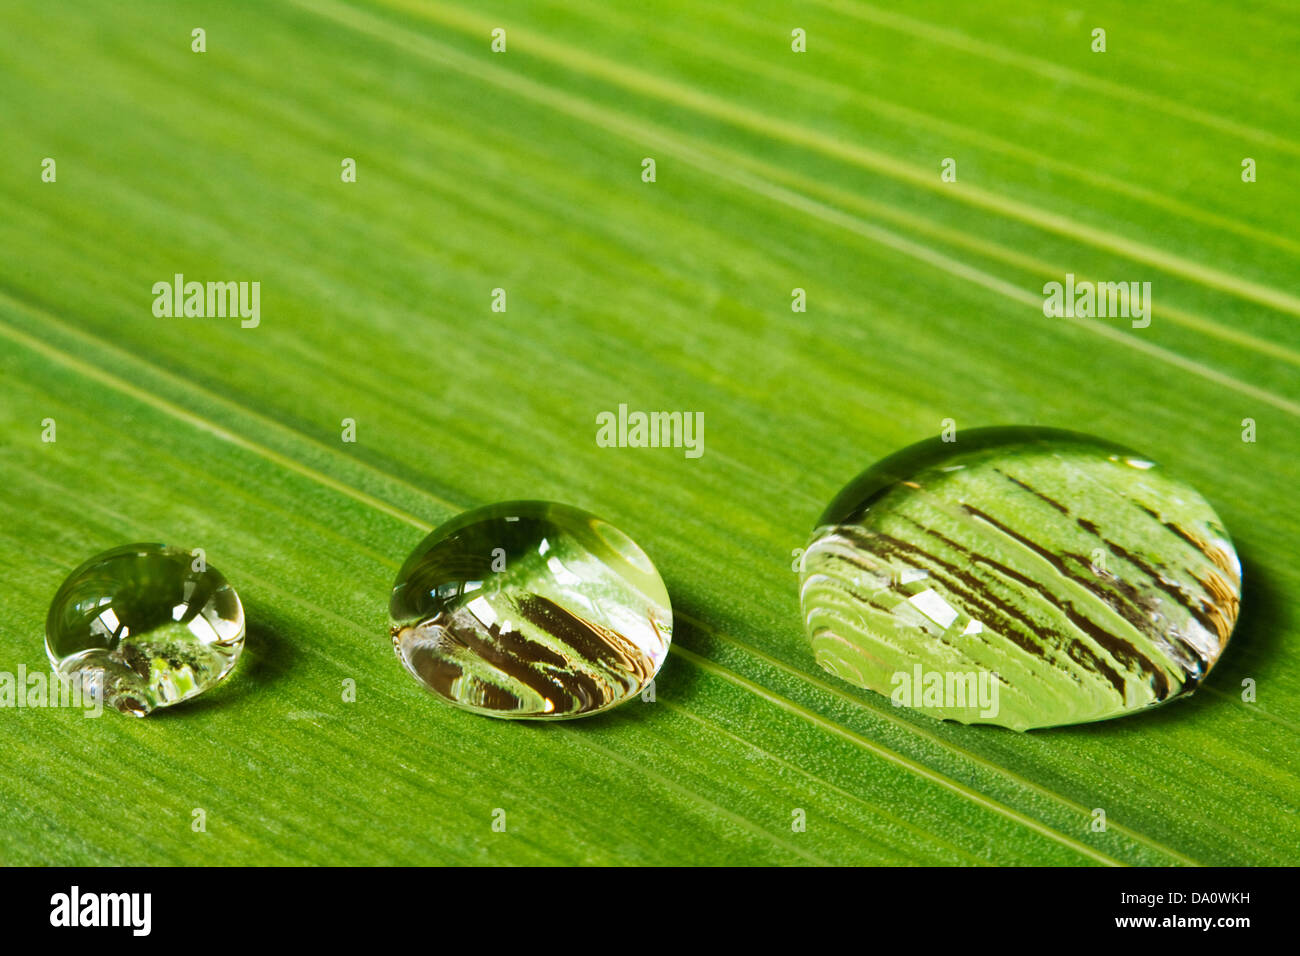 Three droplets of dew on a leaf background great for beauty products and a symbol of purity - Stock Image